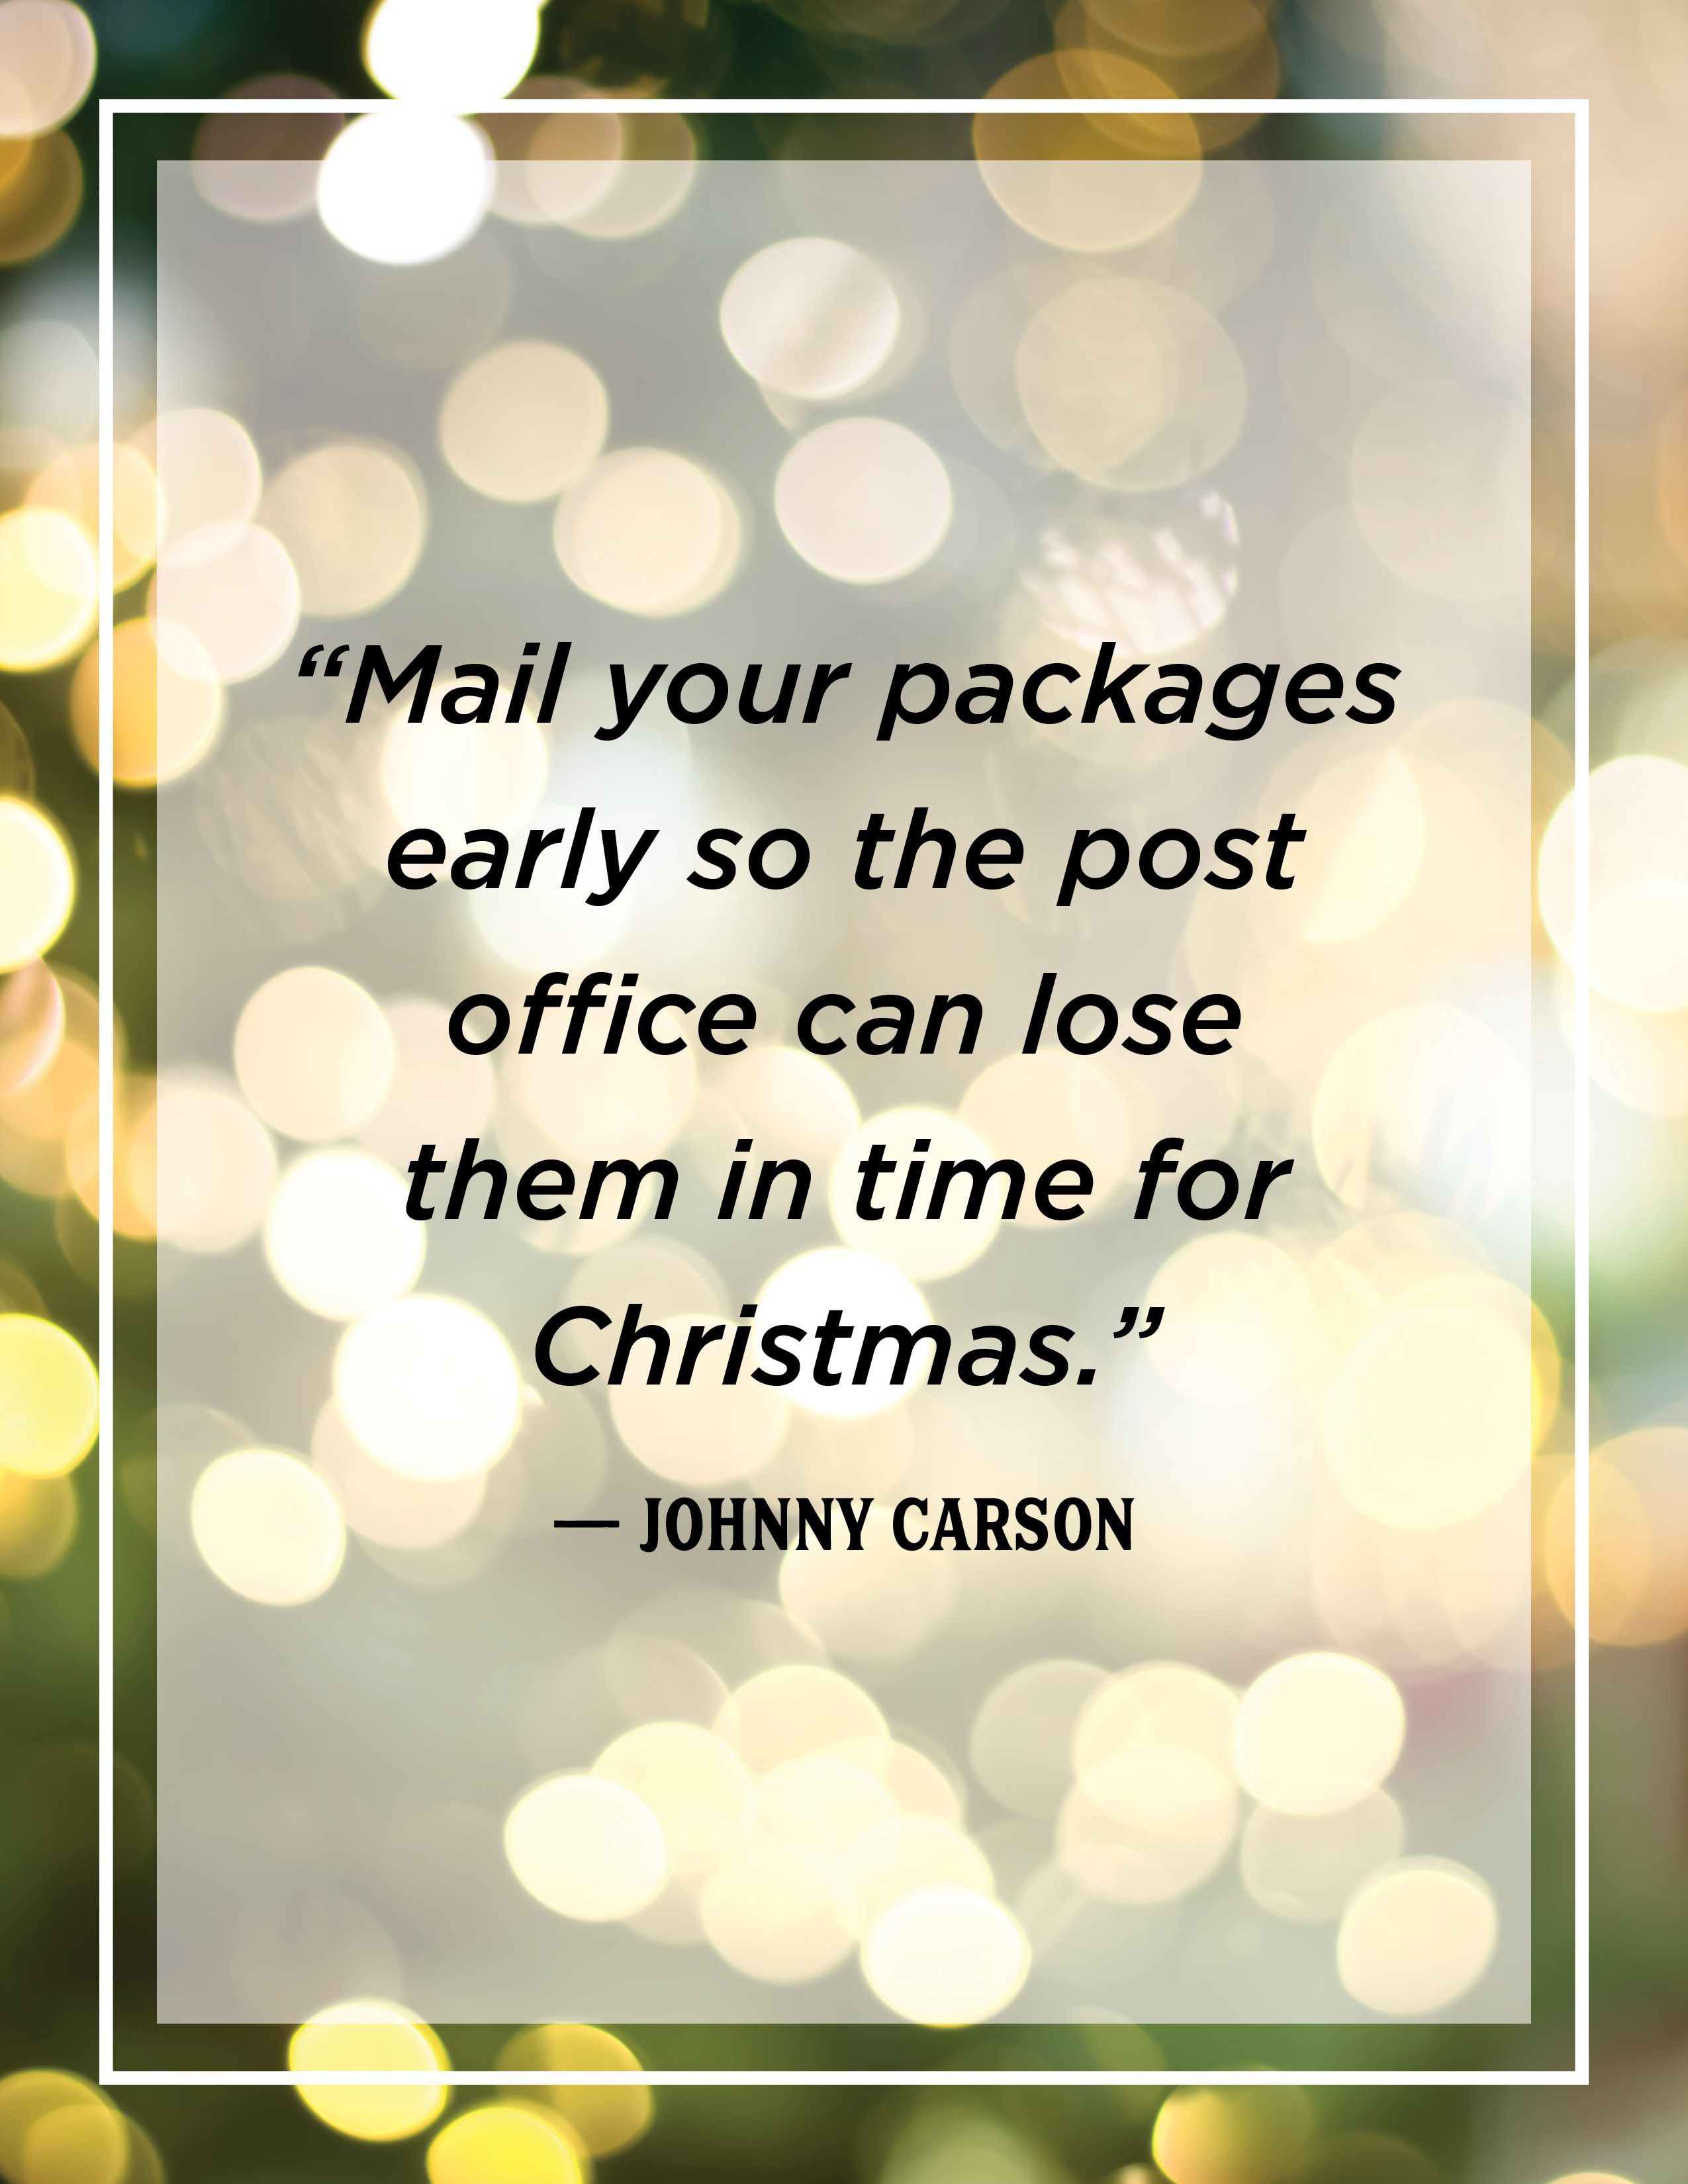 30 Funny Christmas Quotes - Funny Christmas Sayings for Cards